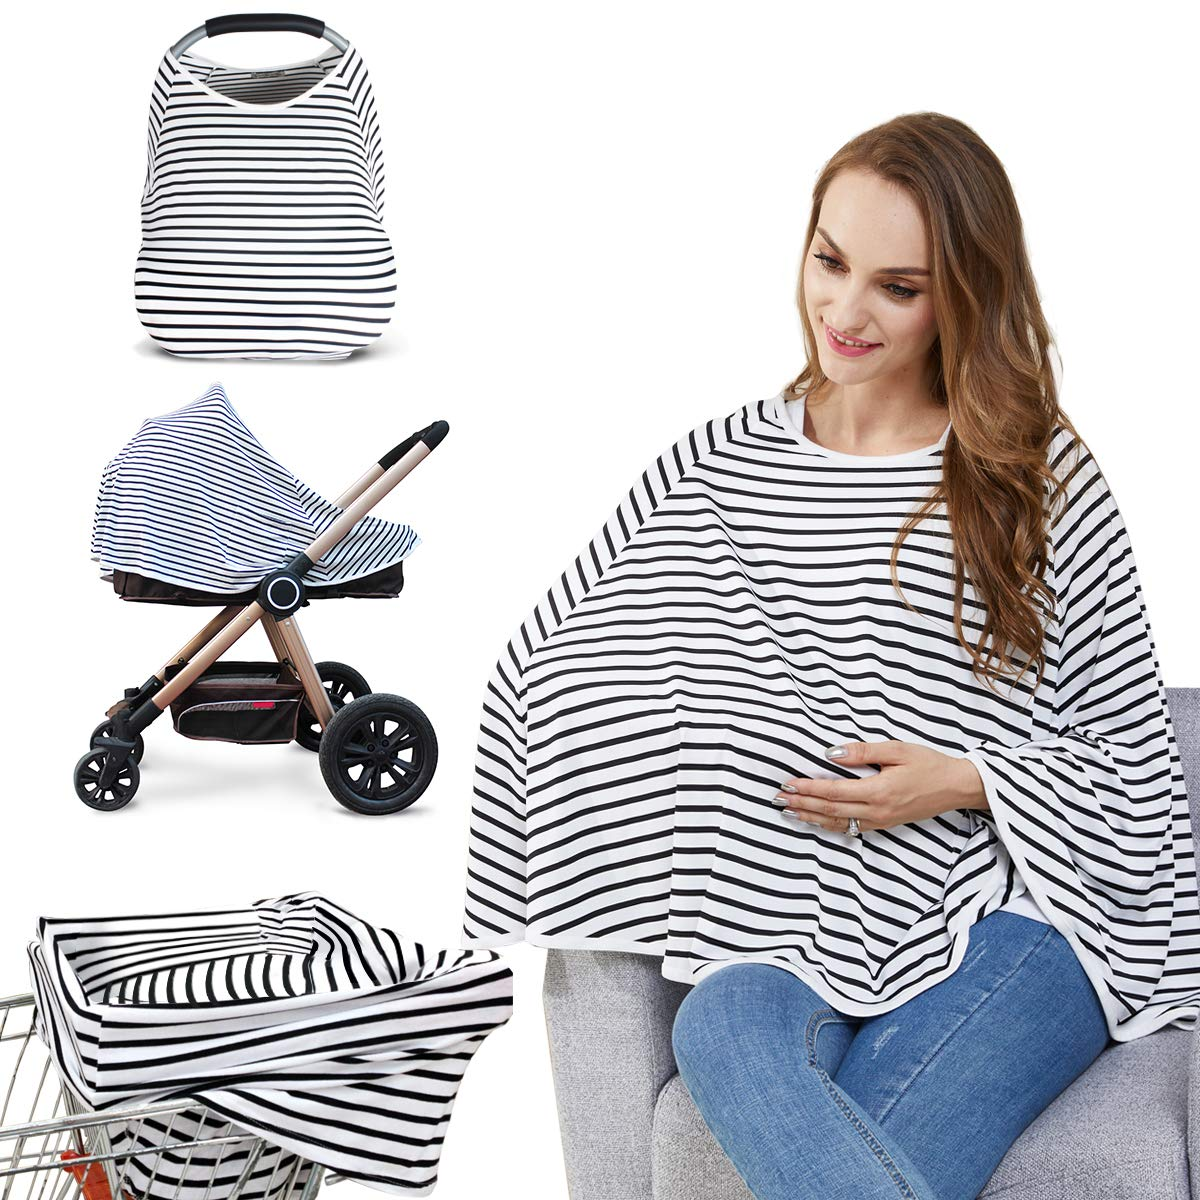 Amazon Com Baby Nursing Cover Nursing Poncho Multi Use Cover For Baby Car Seat Canopy Shopping Cart Cover Stroller Cover 360 Full Privacy Breastfeeding Coverage Baby Shower Gifts For Boy Girl Baby